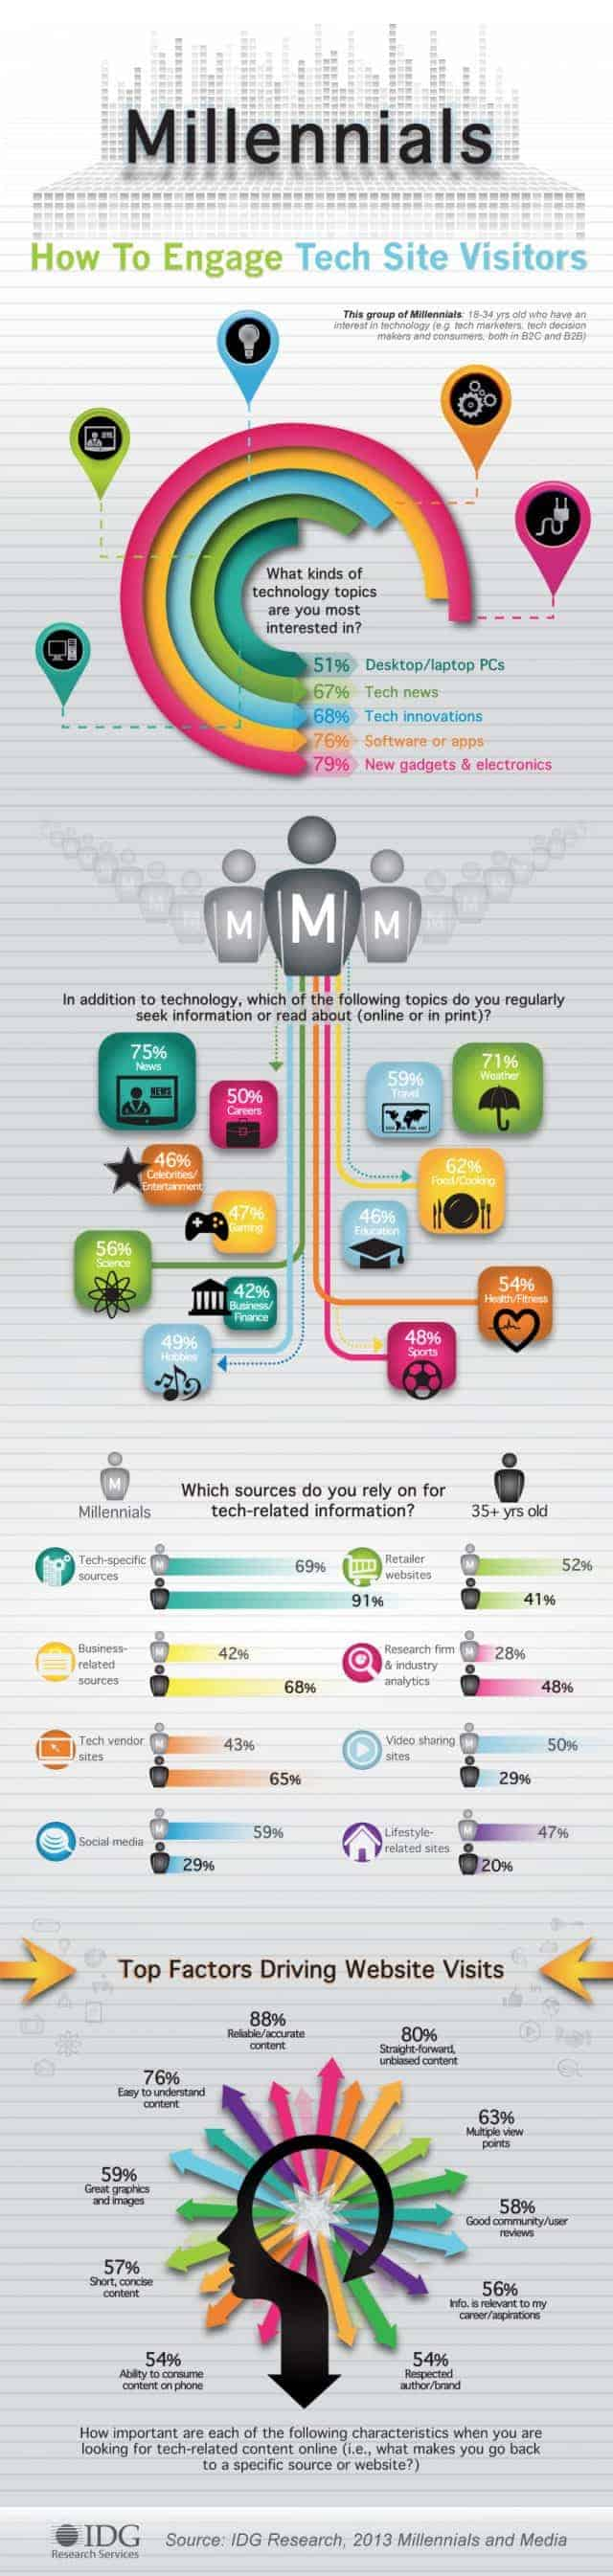 Millennials How to Engage Tech Site Visitors Infographic